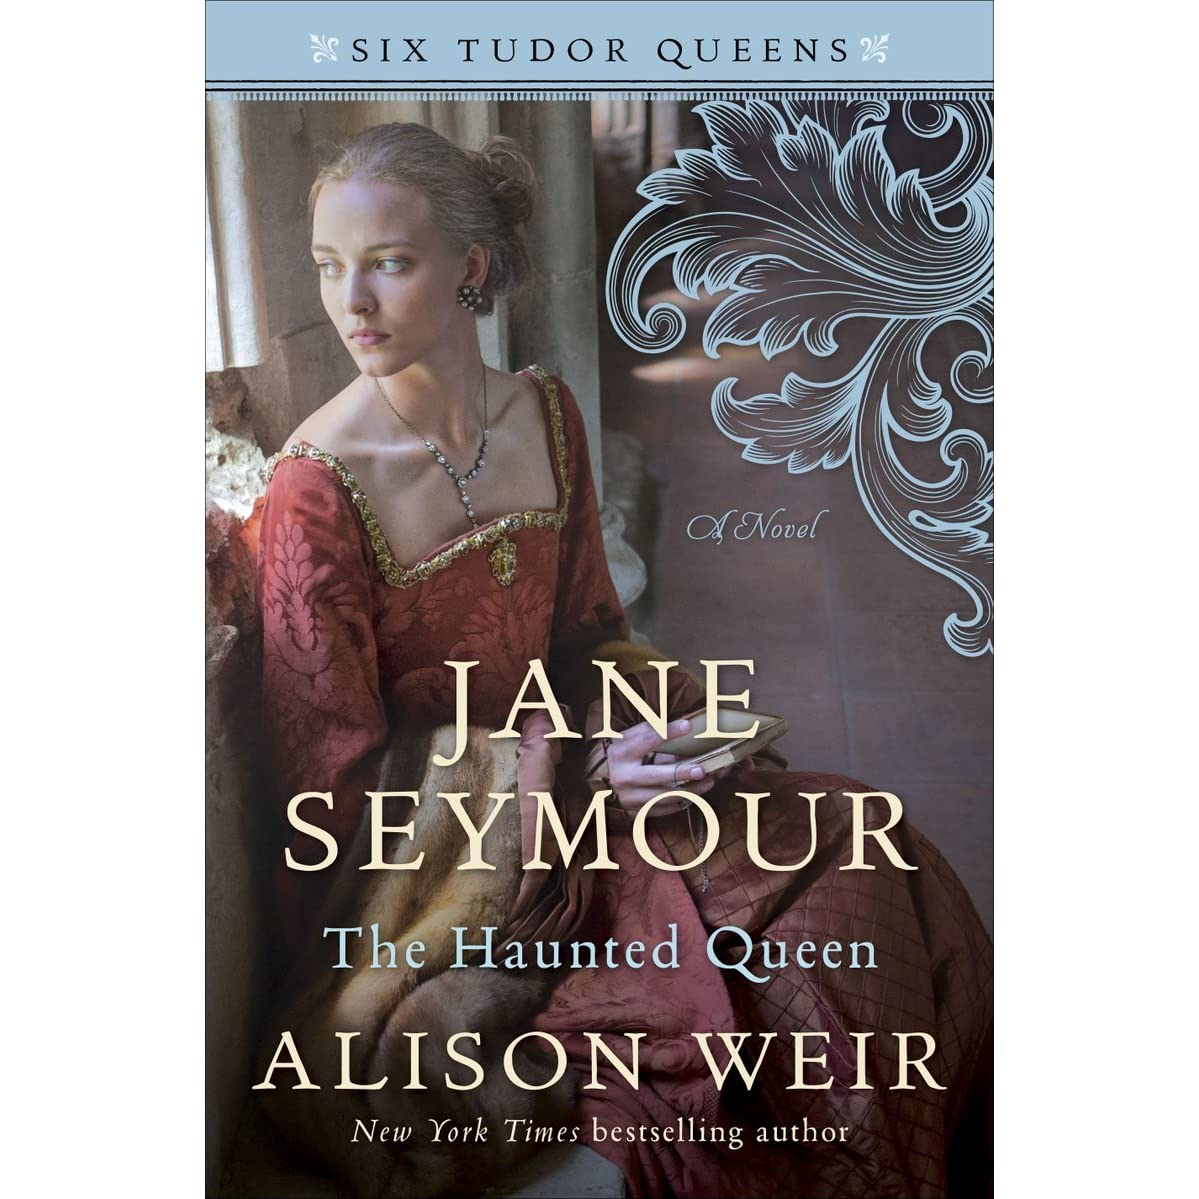 Jane Seymour: The Haunted Queen (six Tudor Queens, #3) By Alison Weir €�  Reviews, Discussion, Bookclubs, Lists